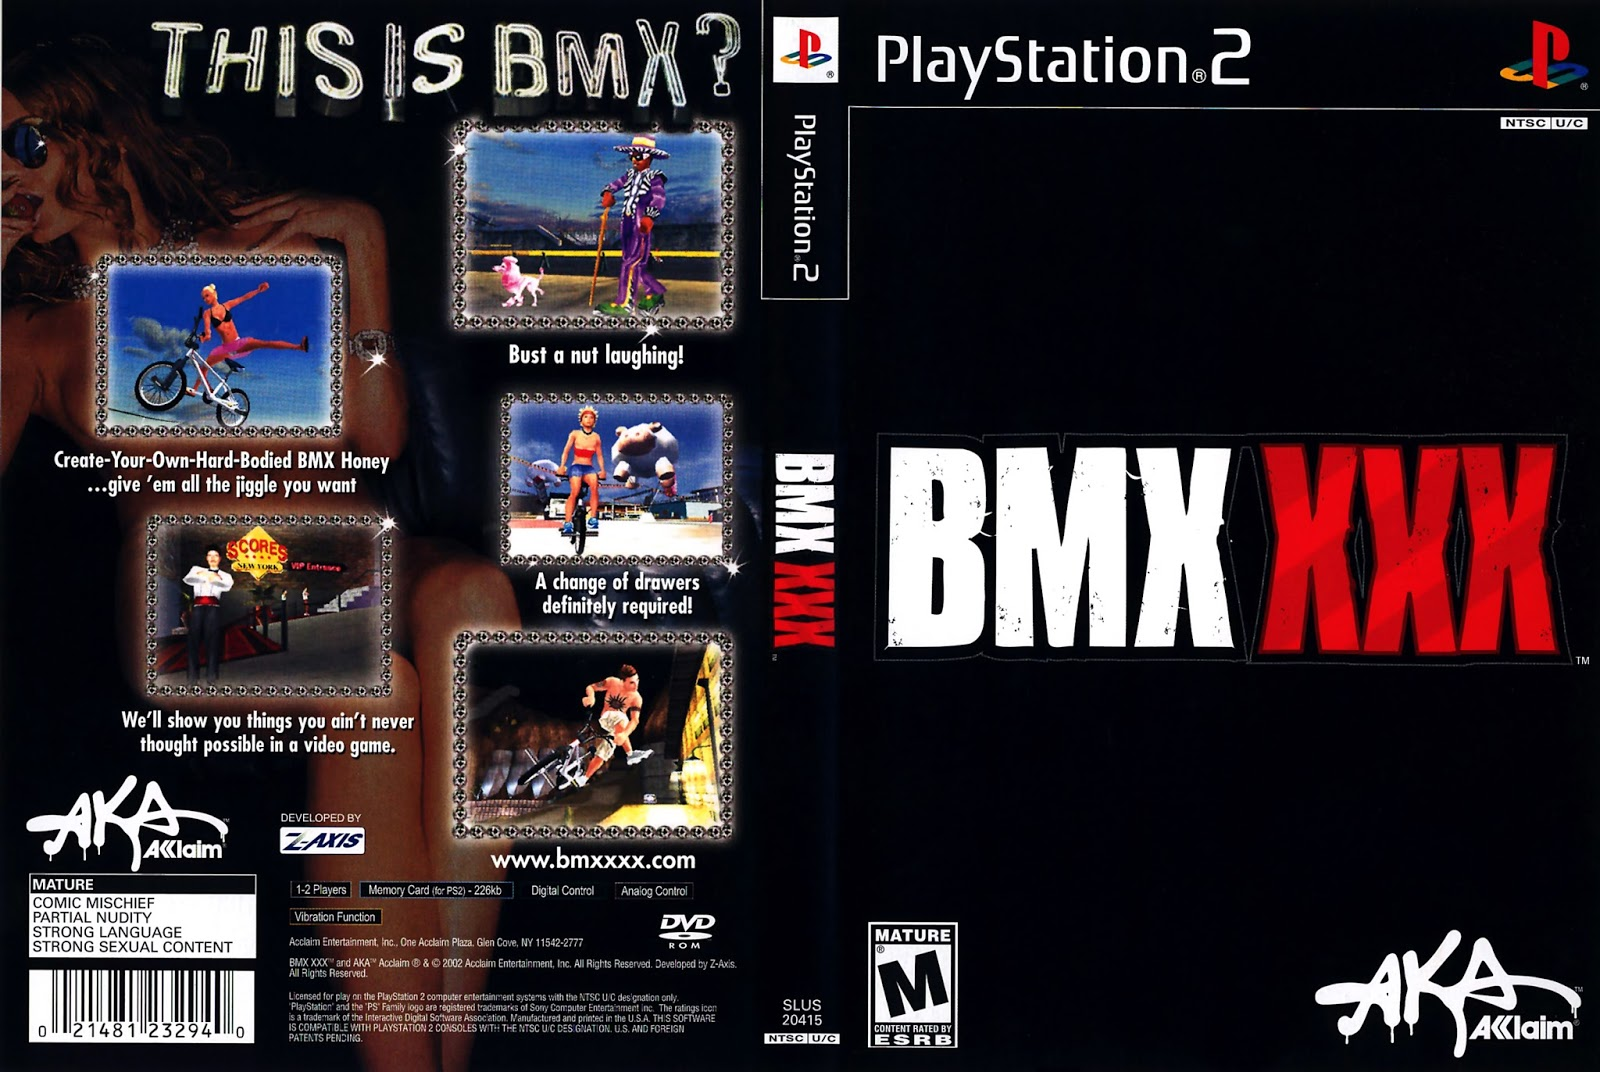 Are xxx playstation games